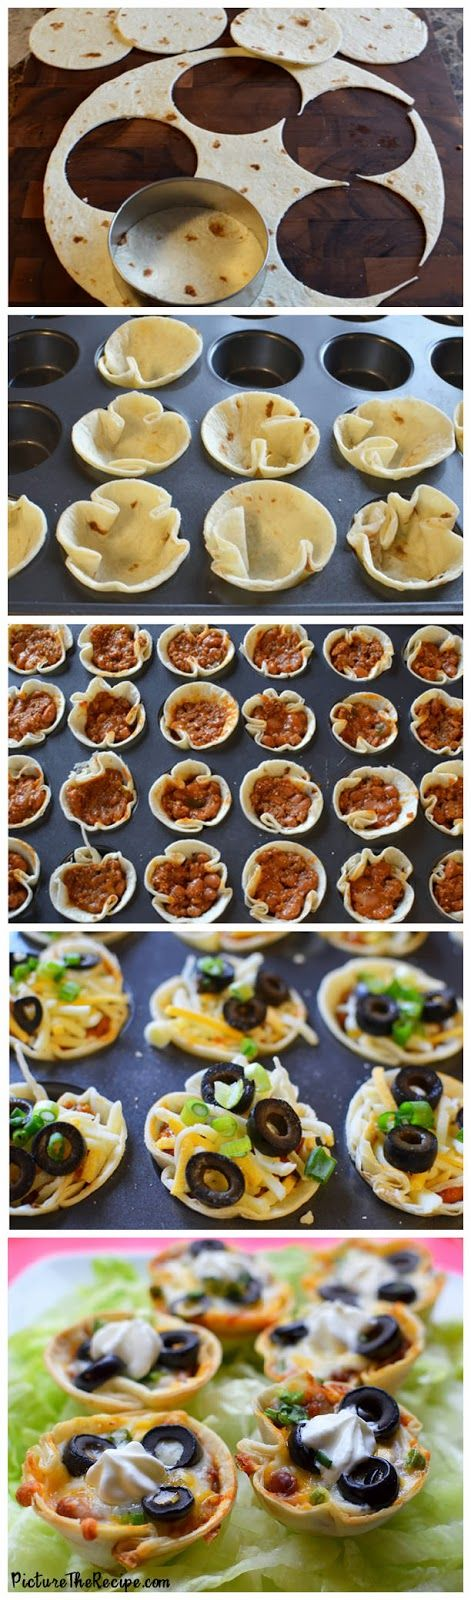 Mini Mexican Pizzas - Bite sized Tortilla shells stuffed with chili, cheese and olives...great party appetizer!